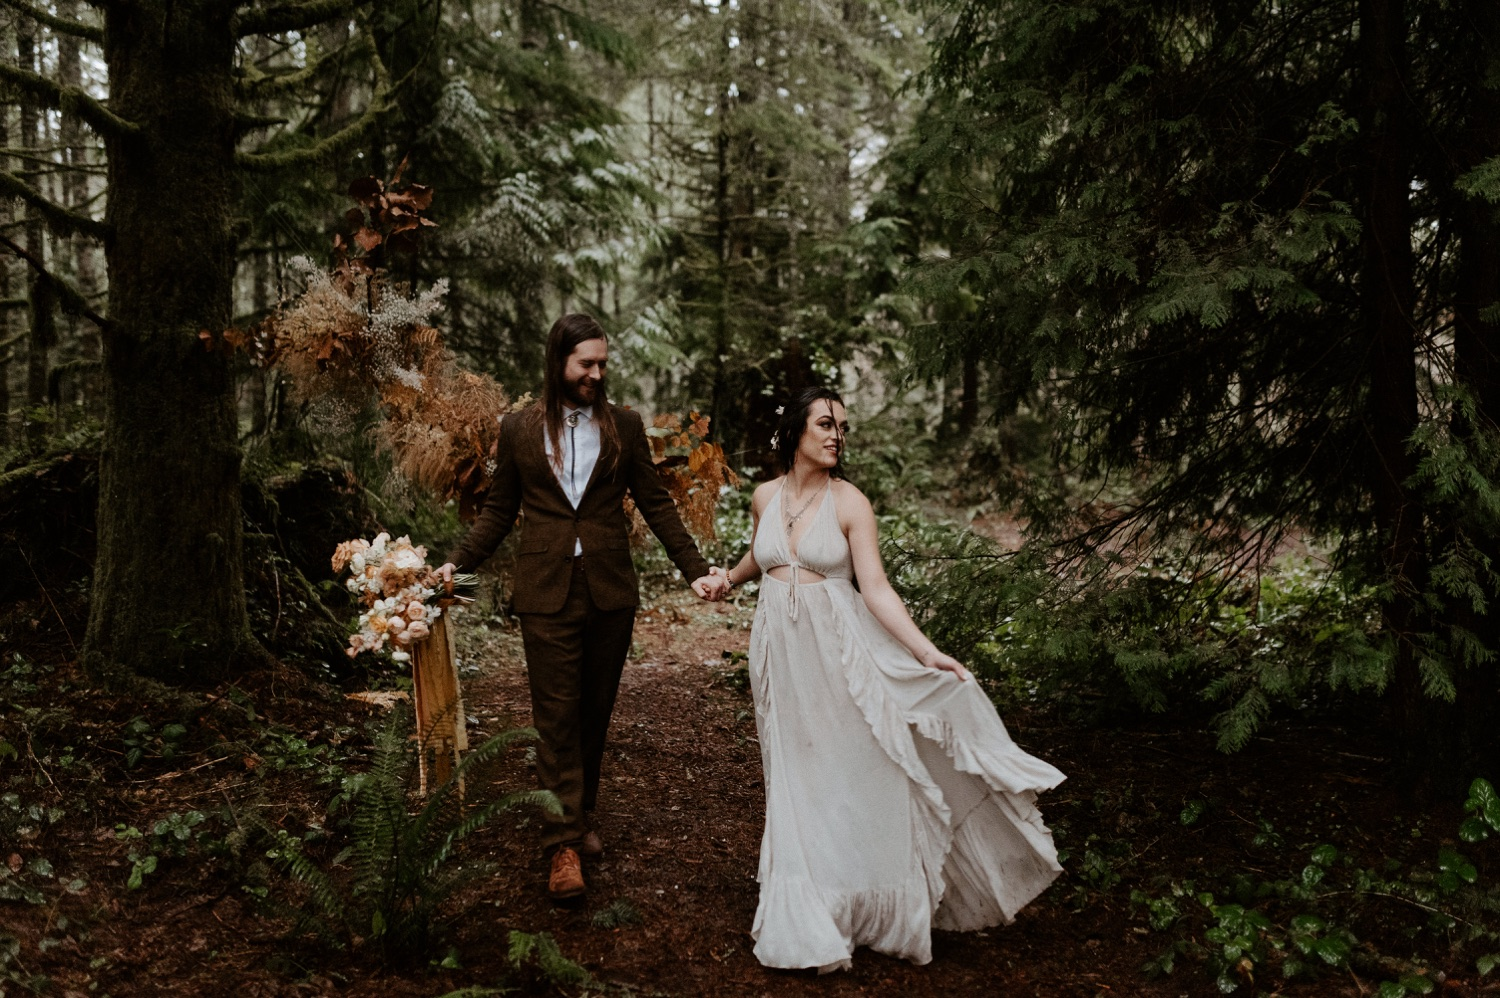 The Woodlands House Sandy Oregon Elopement Portland Elopement Photographer PNW Adventurous Elopement Anais Possamai Photography 026